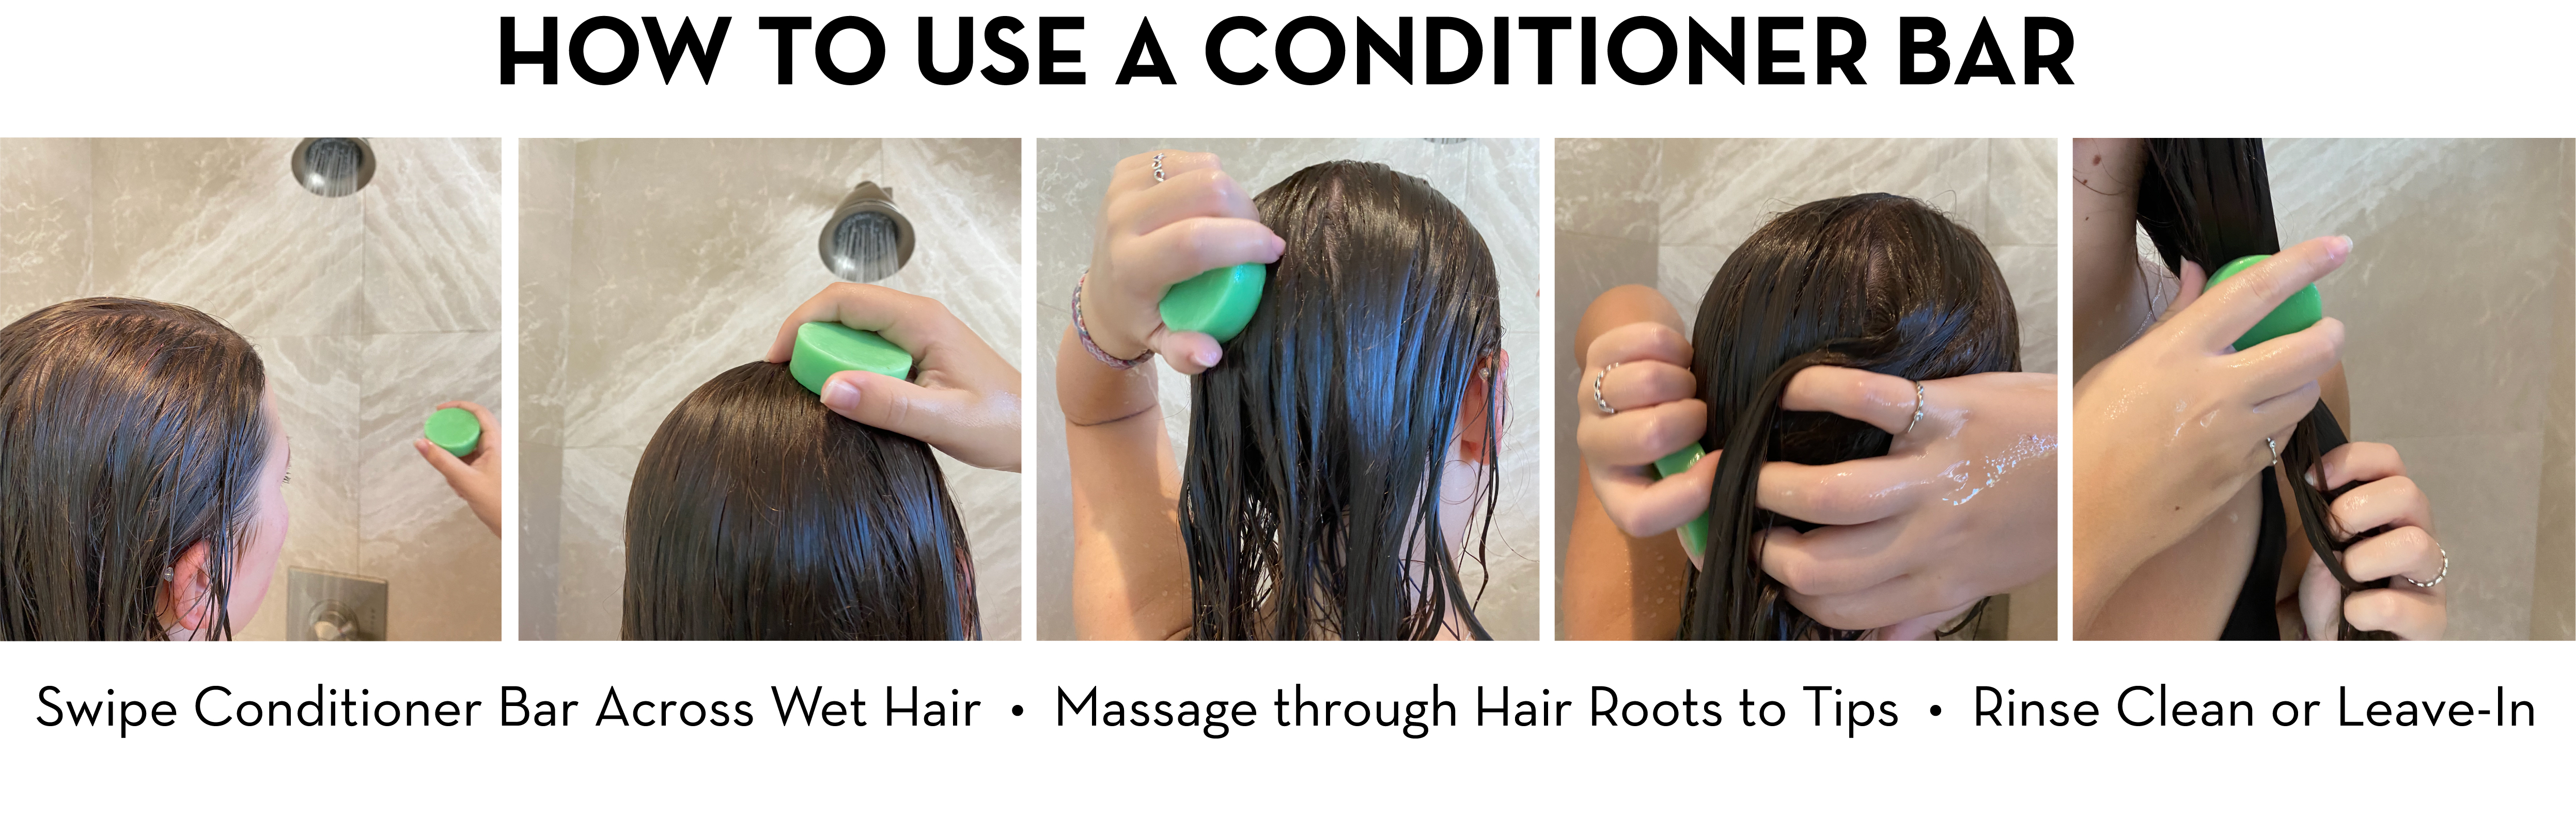 How to Use a Conditioner Bar